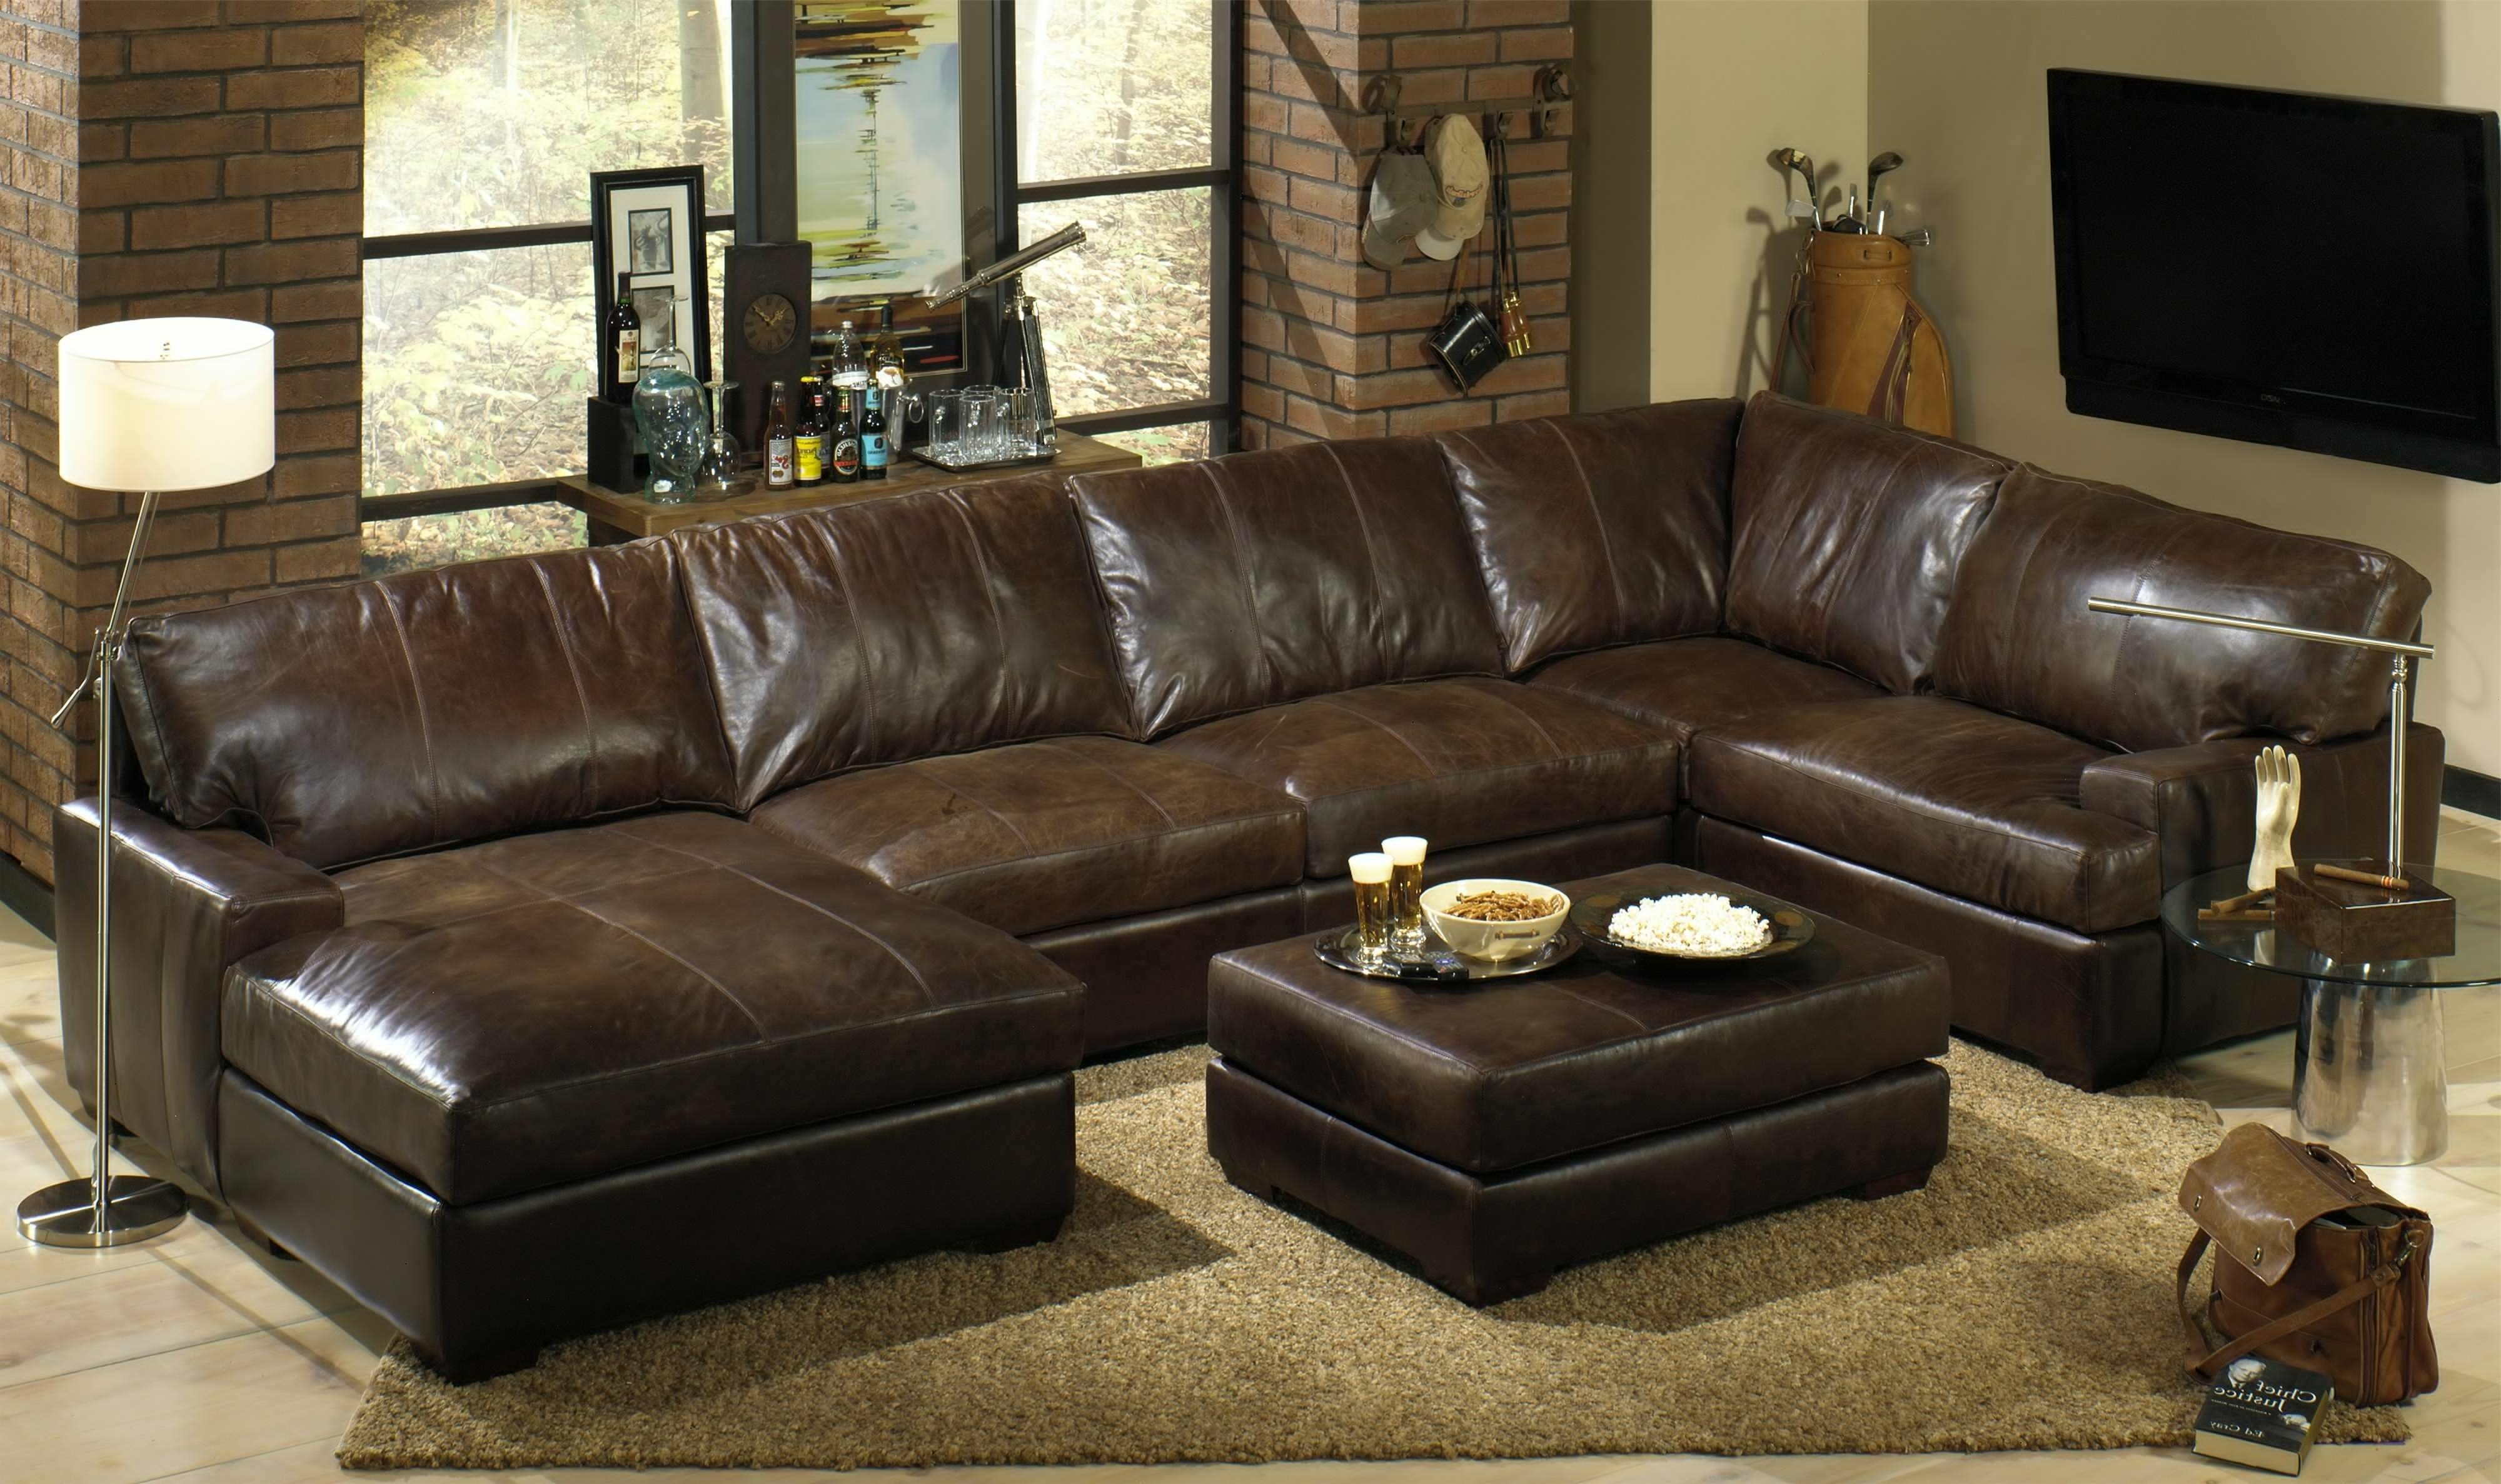 2018 Leather Loveseat Recliner Leather Couches Clearance Leather Corner With Regard To Clearance Sectional Sofas (View 15 of 15)